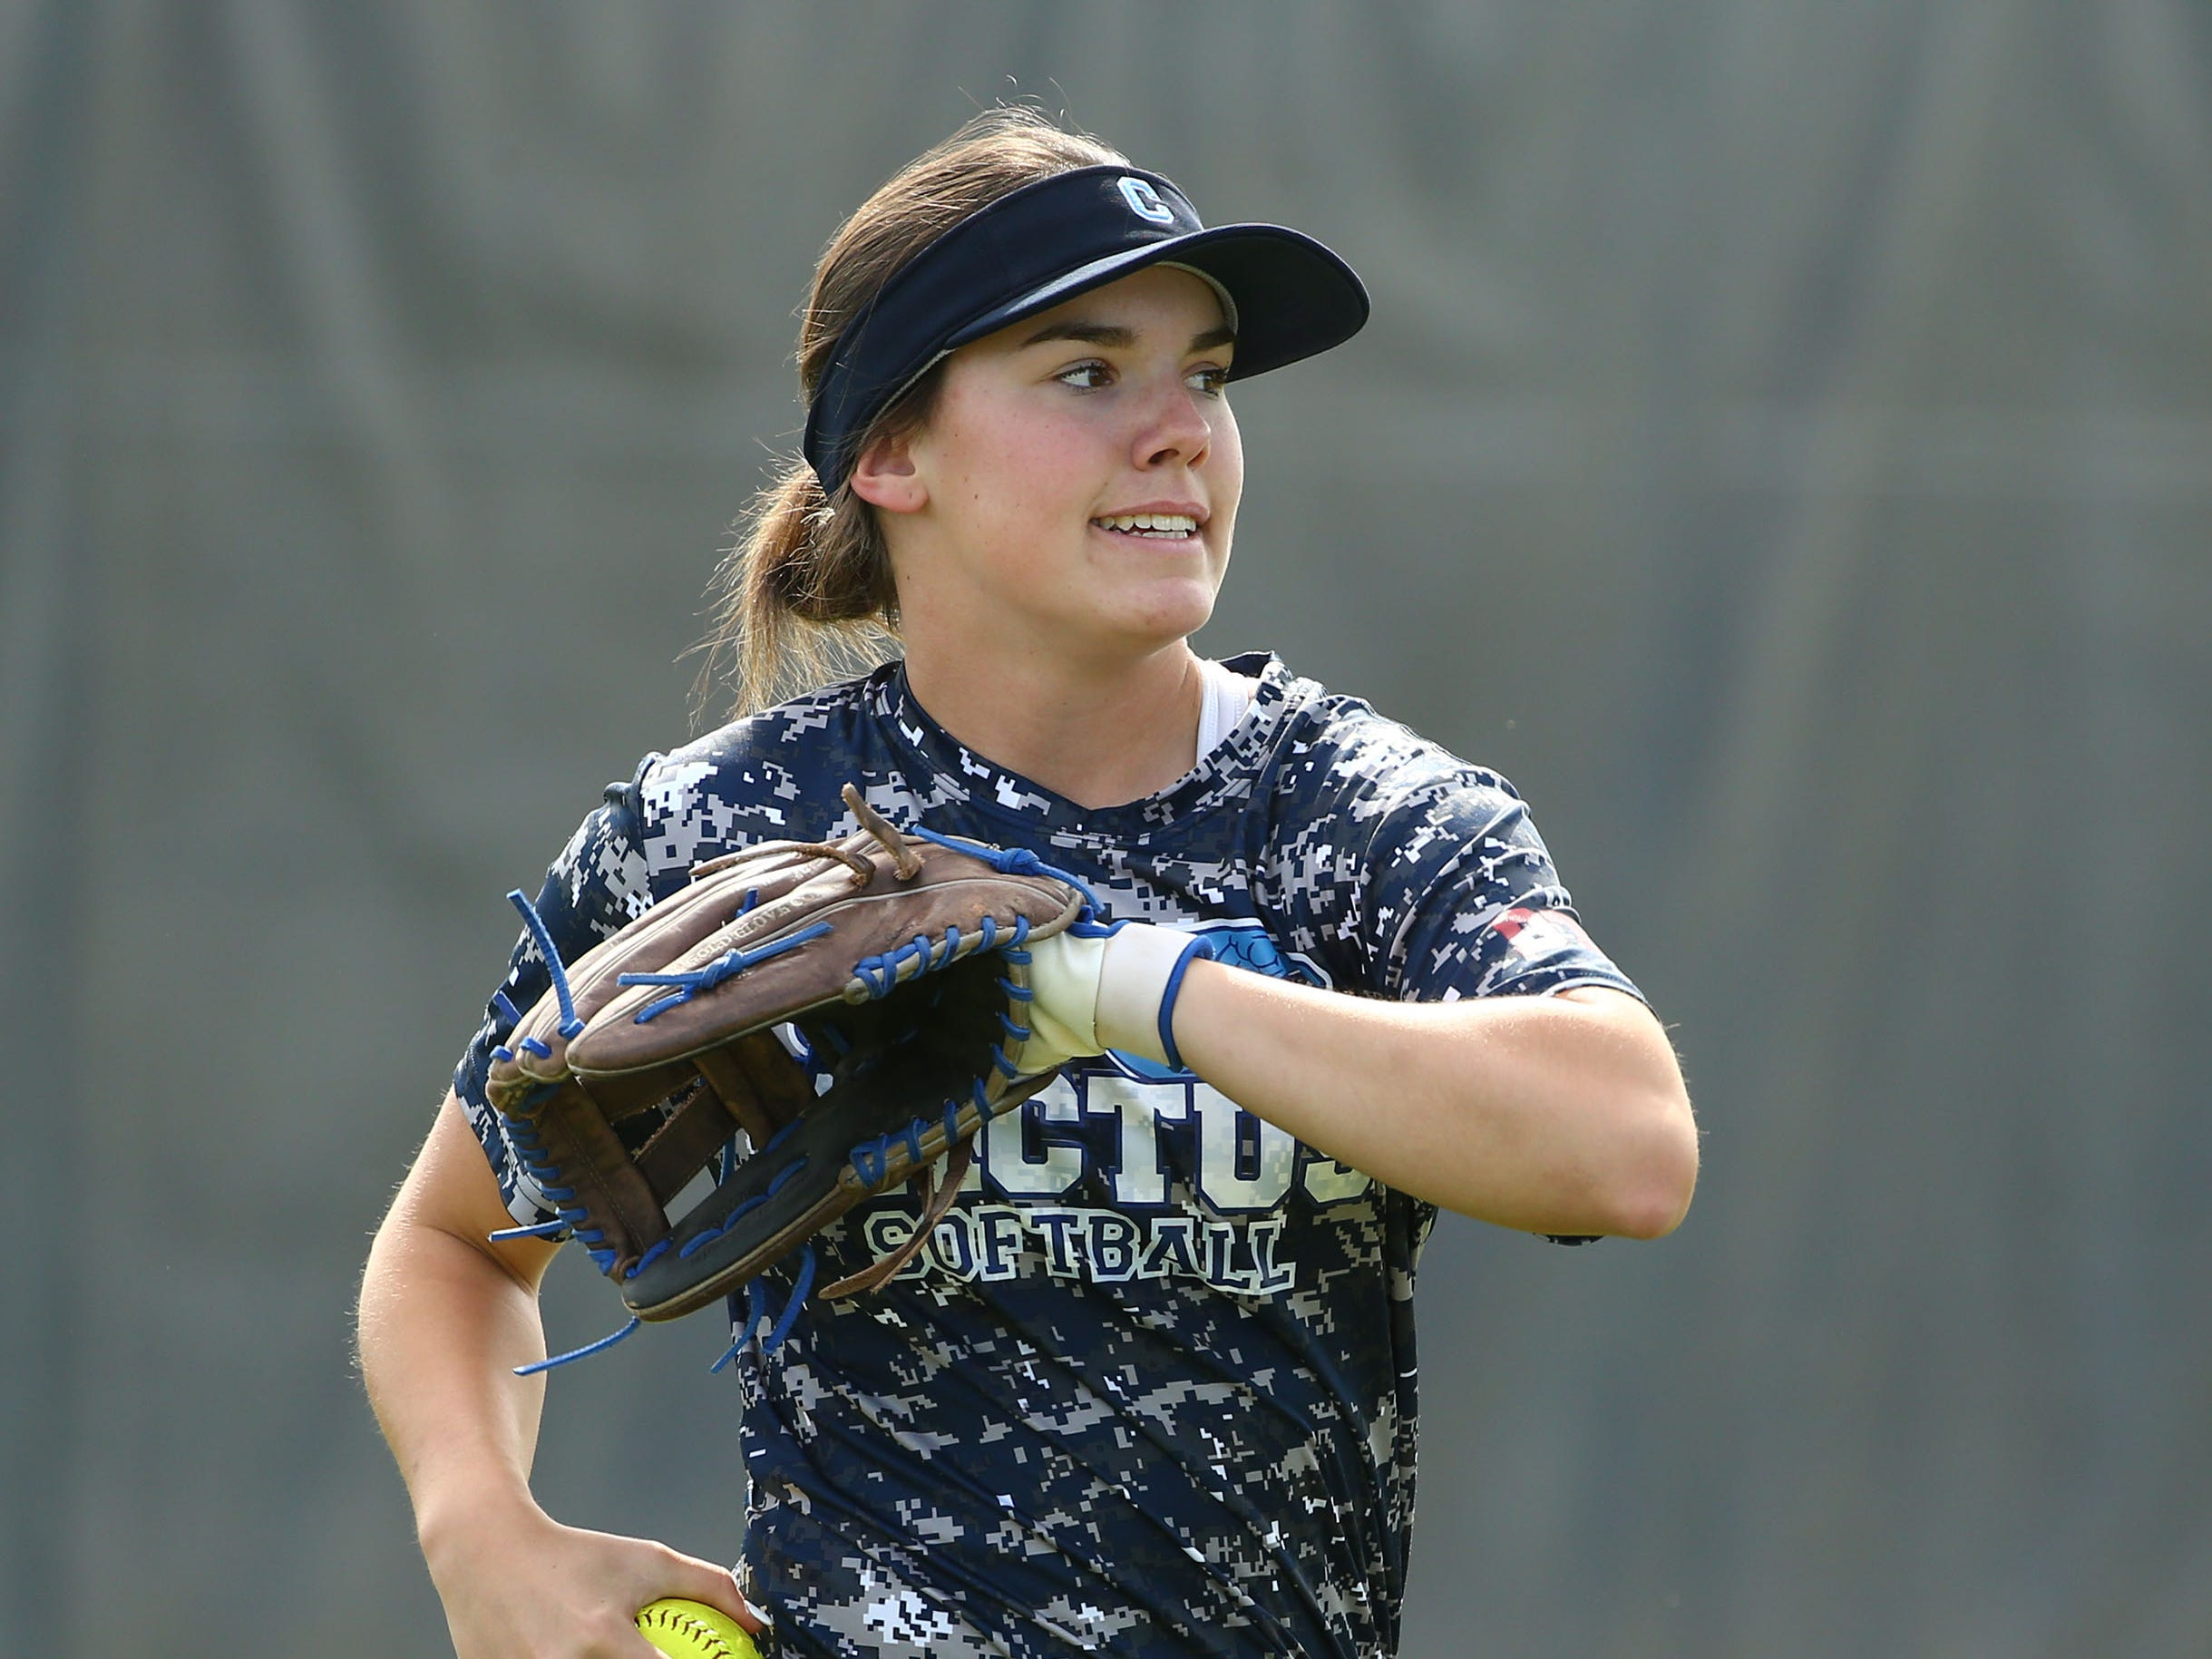 Cactus High softball player Tanya Windle during practice on Apr. 2, 2019 at Cactus High School in Glendale, Ariz.